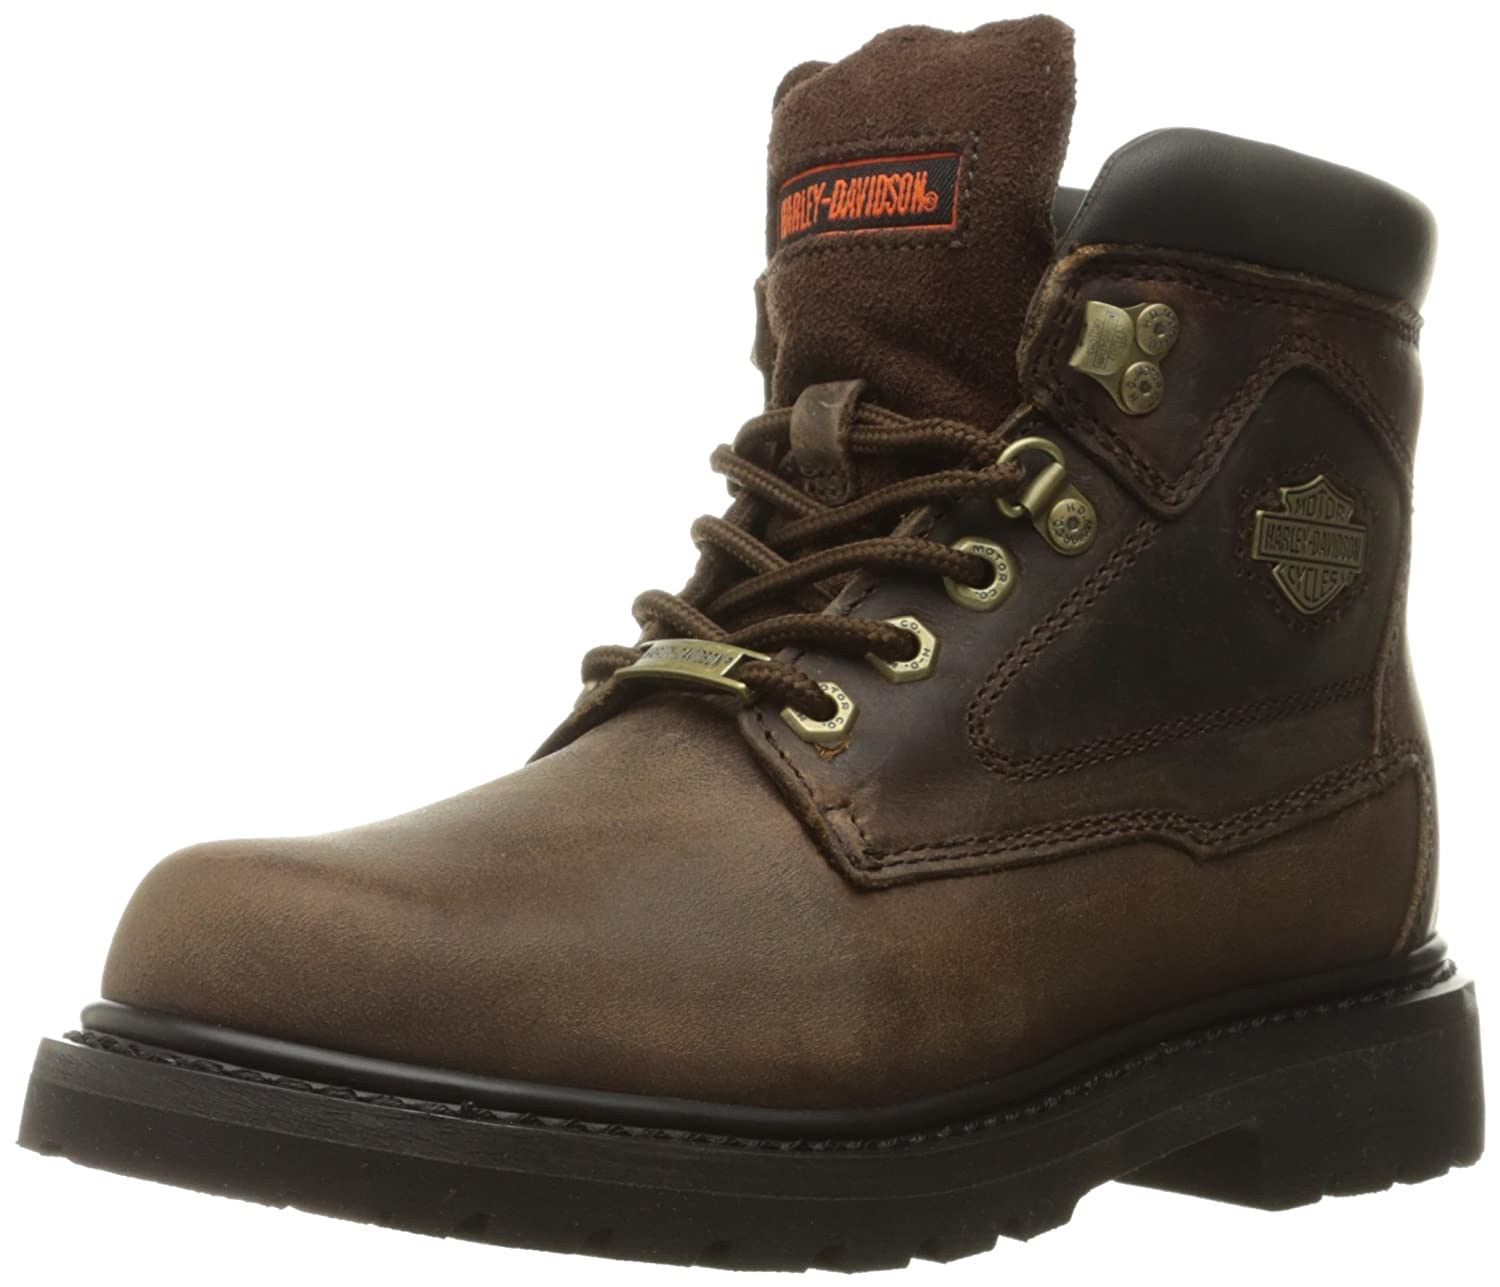 Harley-Davidson Women's Bayport Work Boot B01B420E3A 9.5 B(M) US|Brown